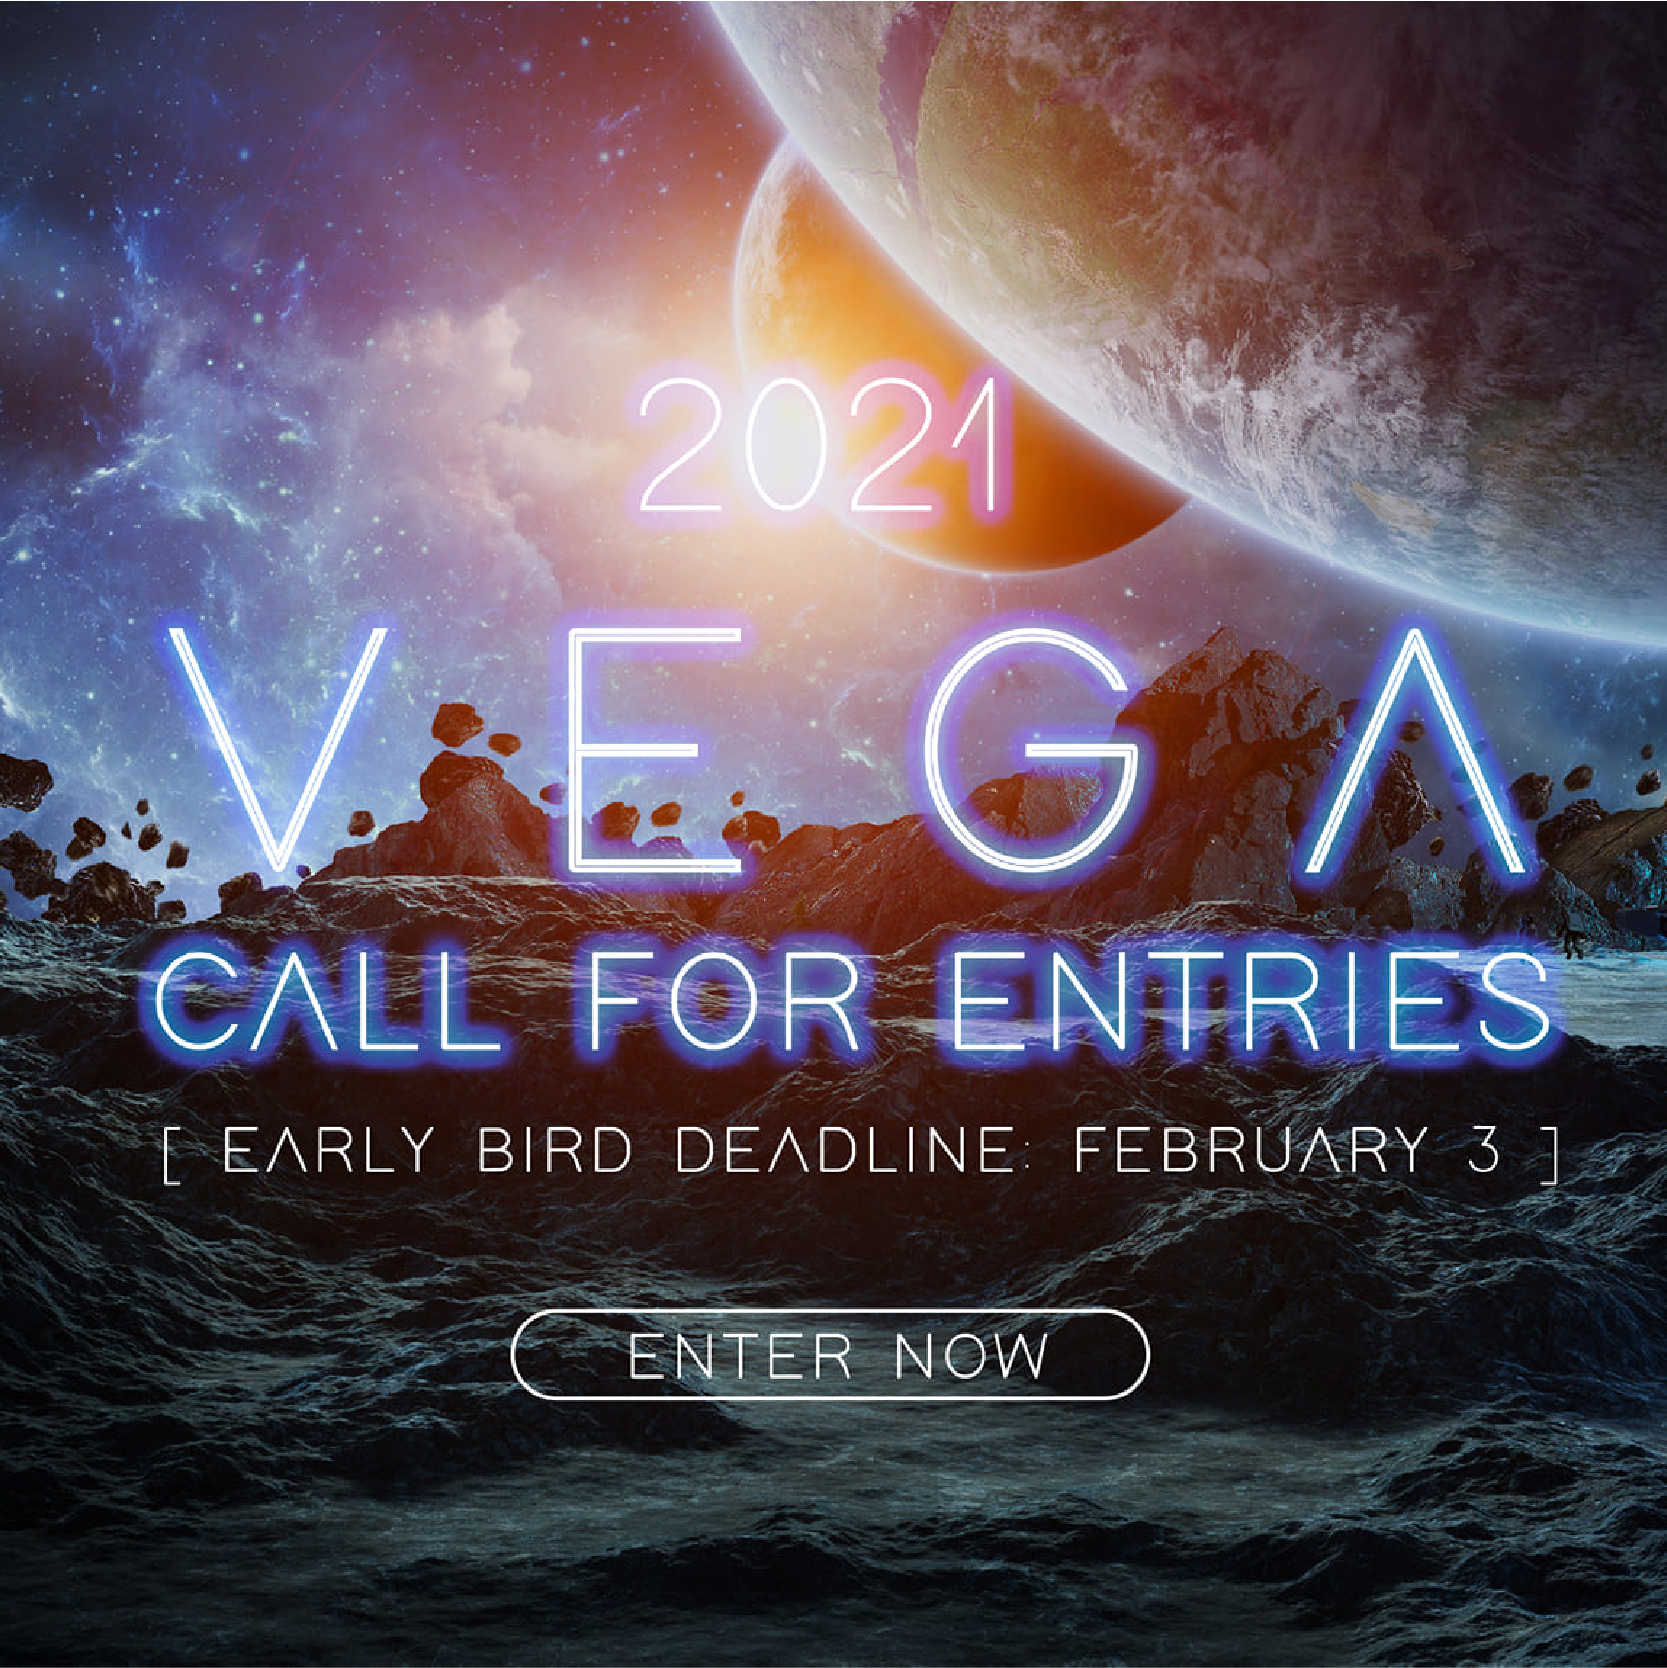 Vega Digital Awards  | 2021 Call for Entries